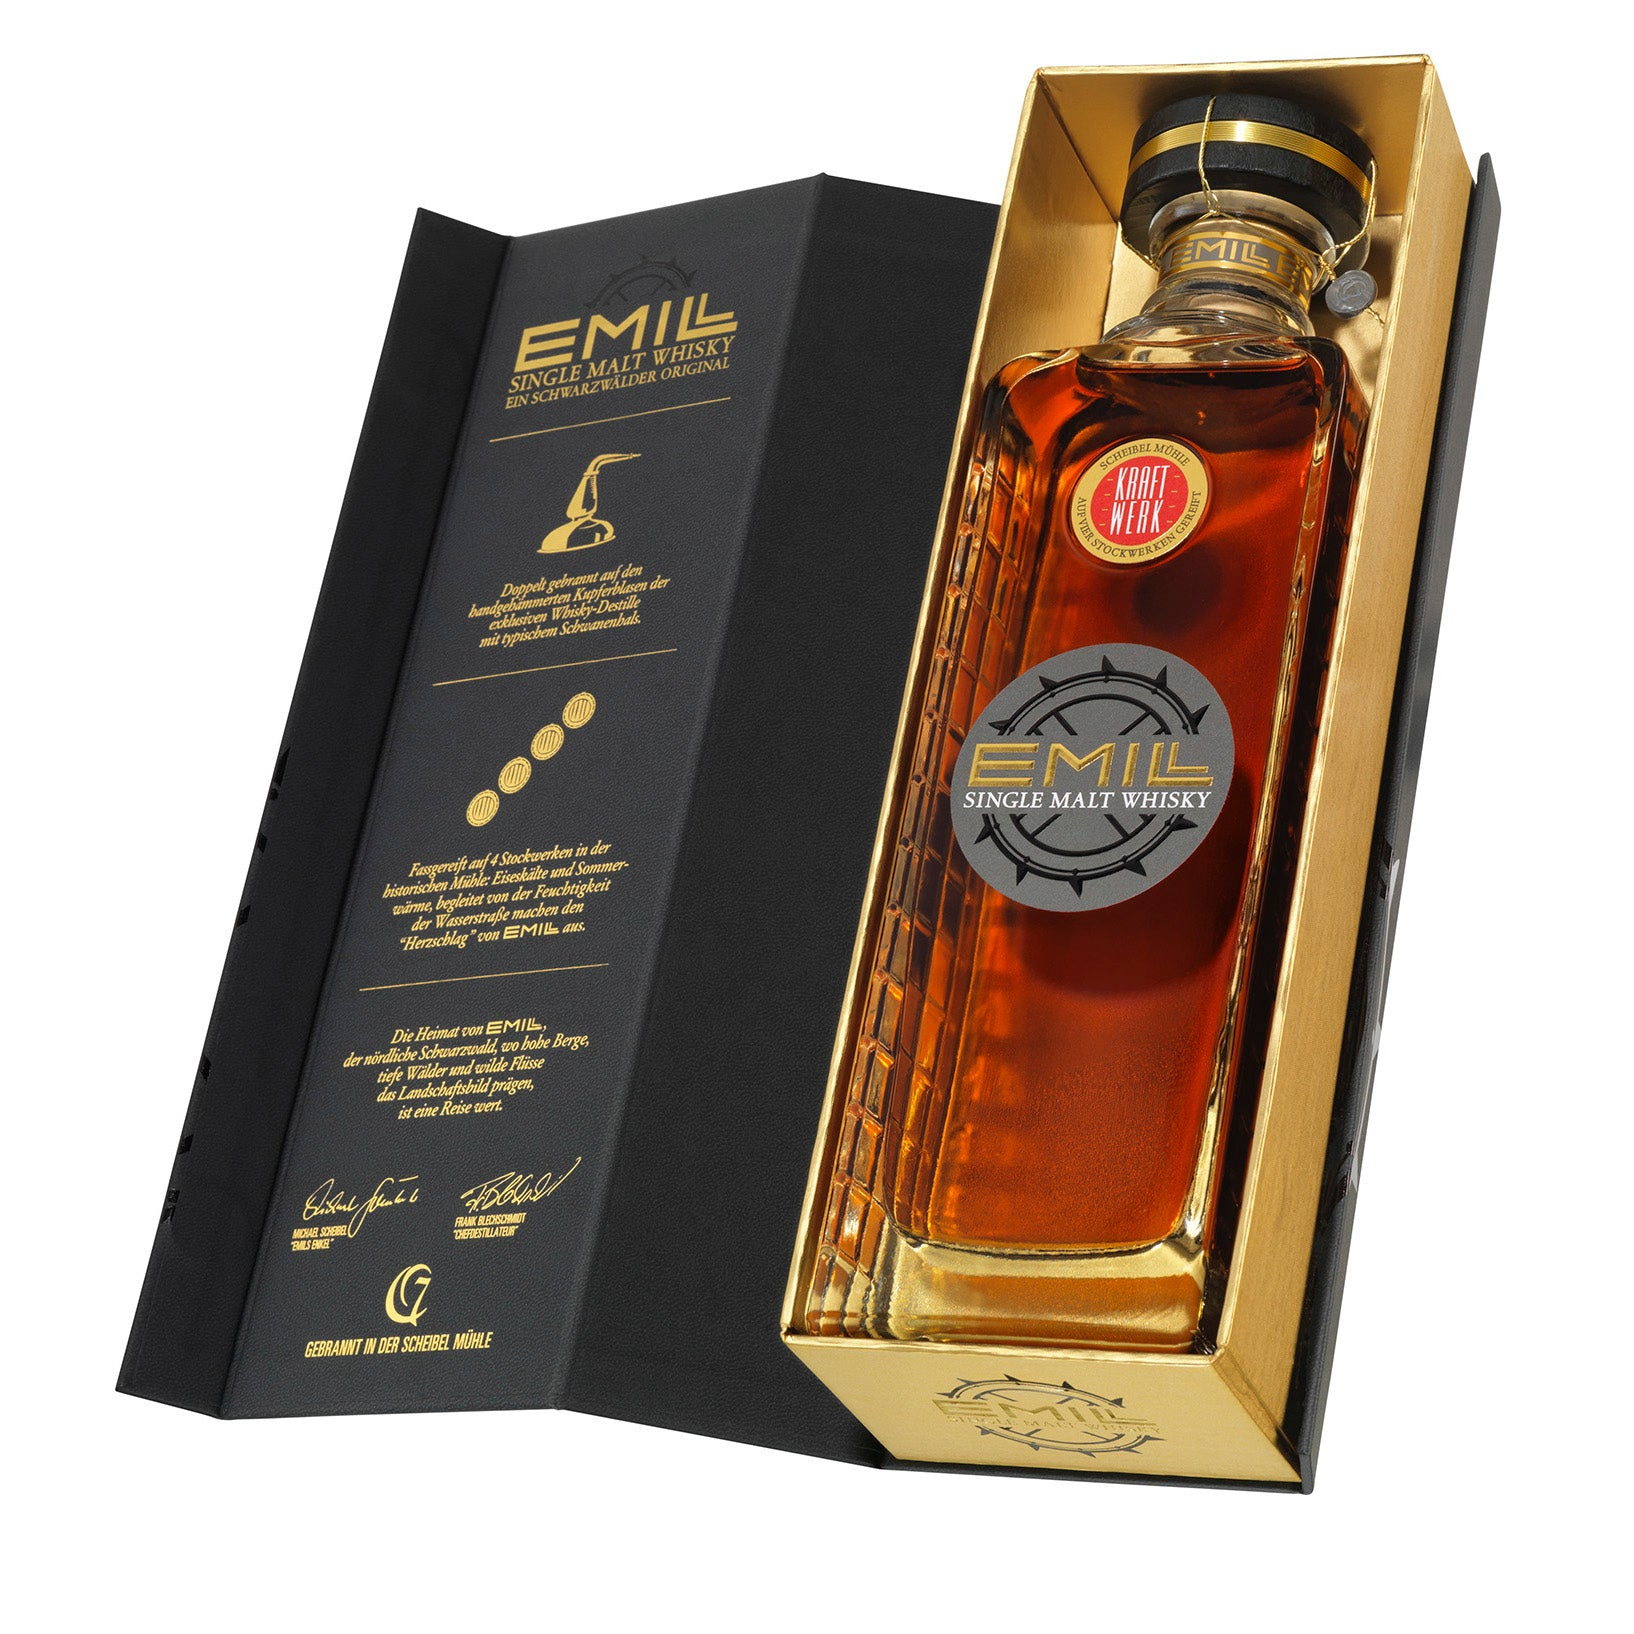 EMILL Kraftwerk – Single Malt Whisky